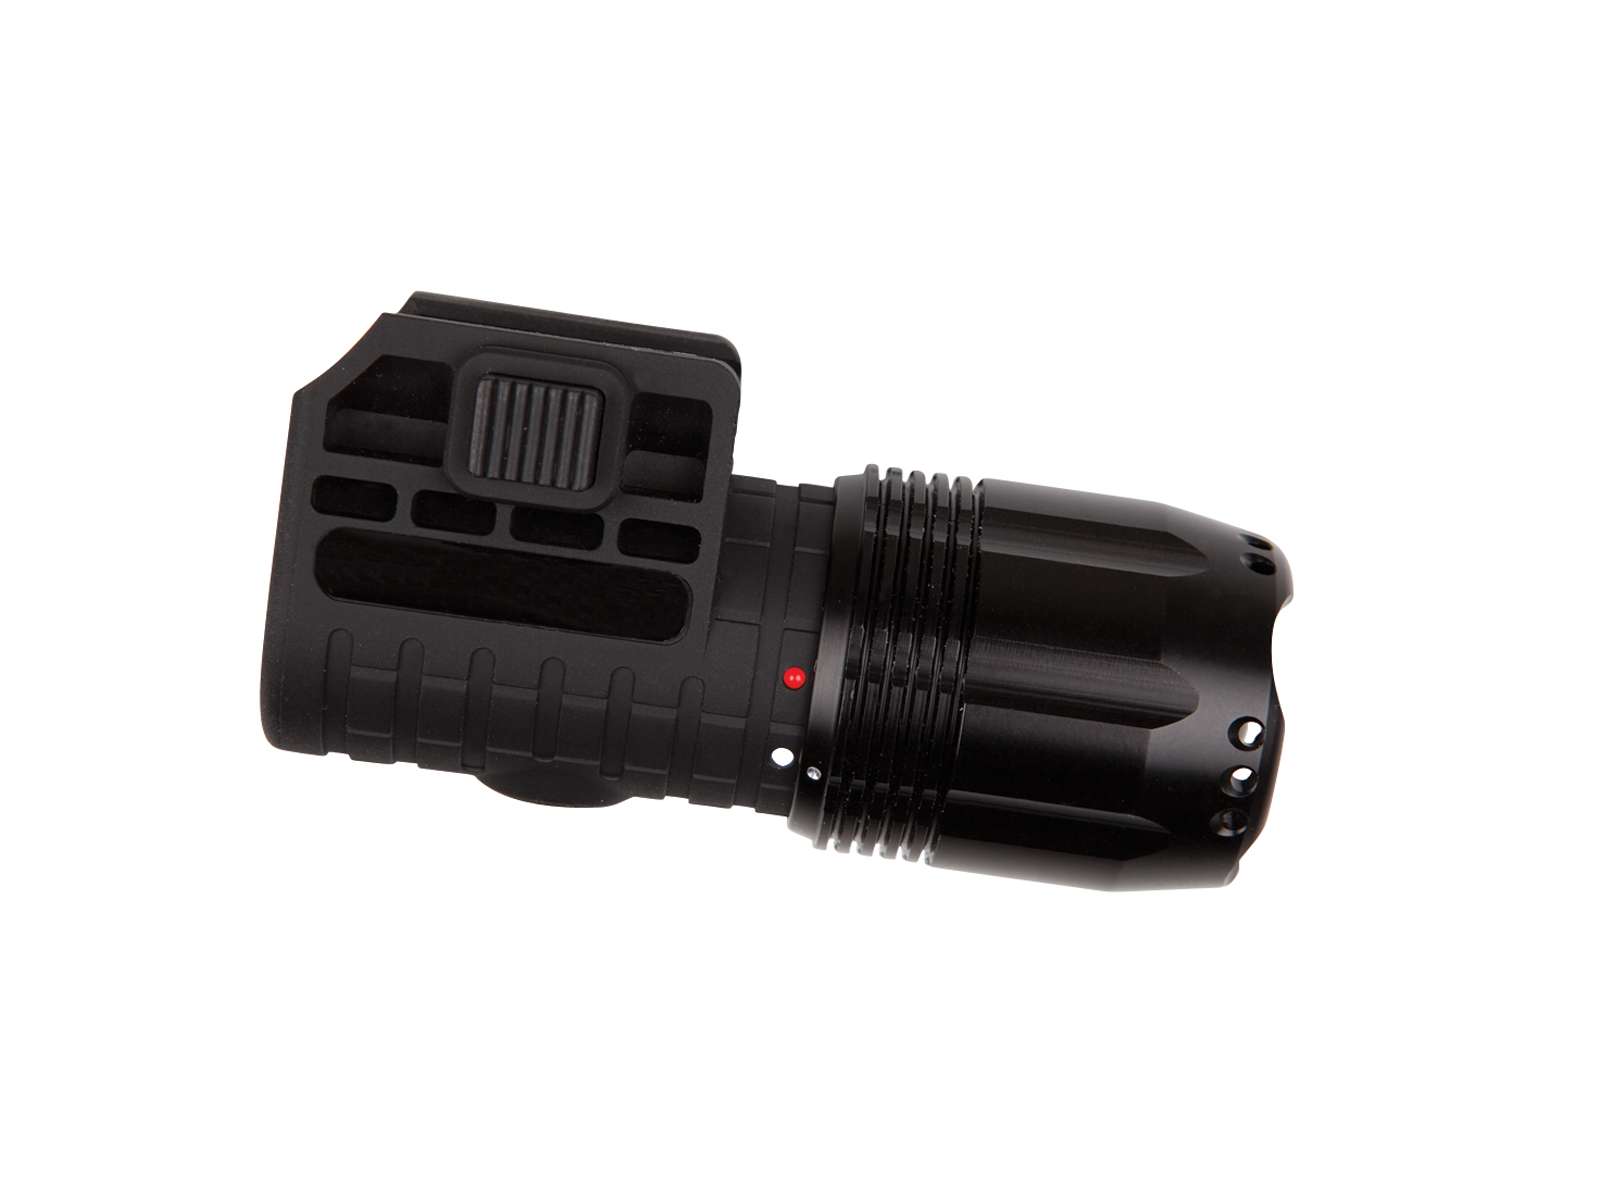 http://www.softair.ch/shop/bilder/GEAR/FLASHLIGHT/ASG_MFLED_2.jpg